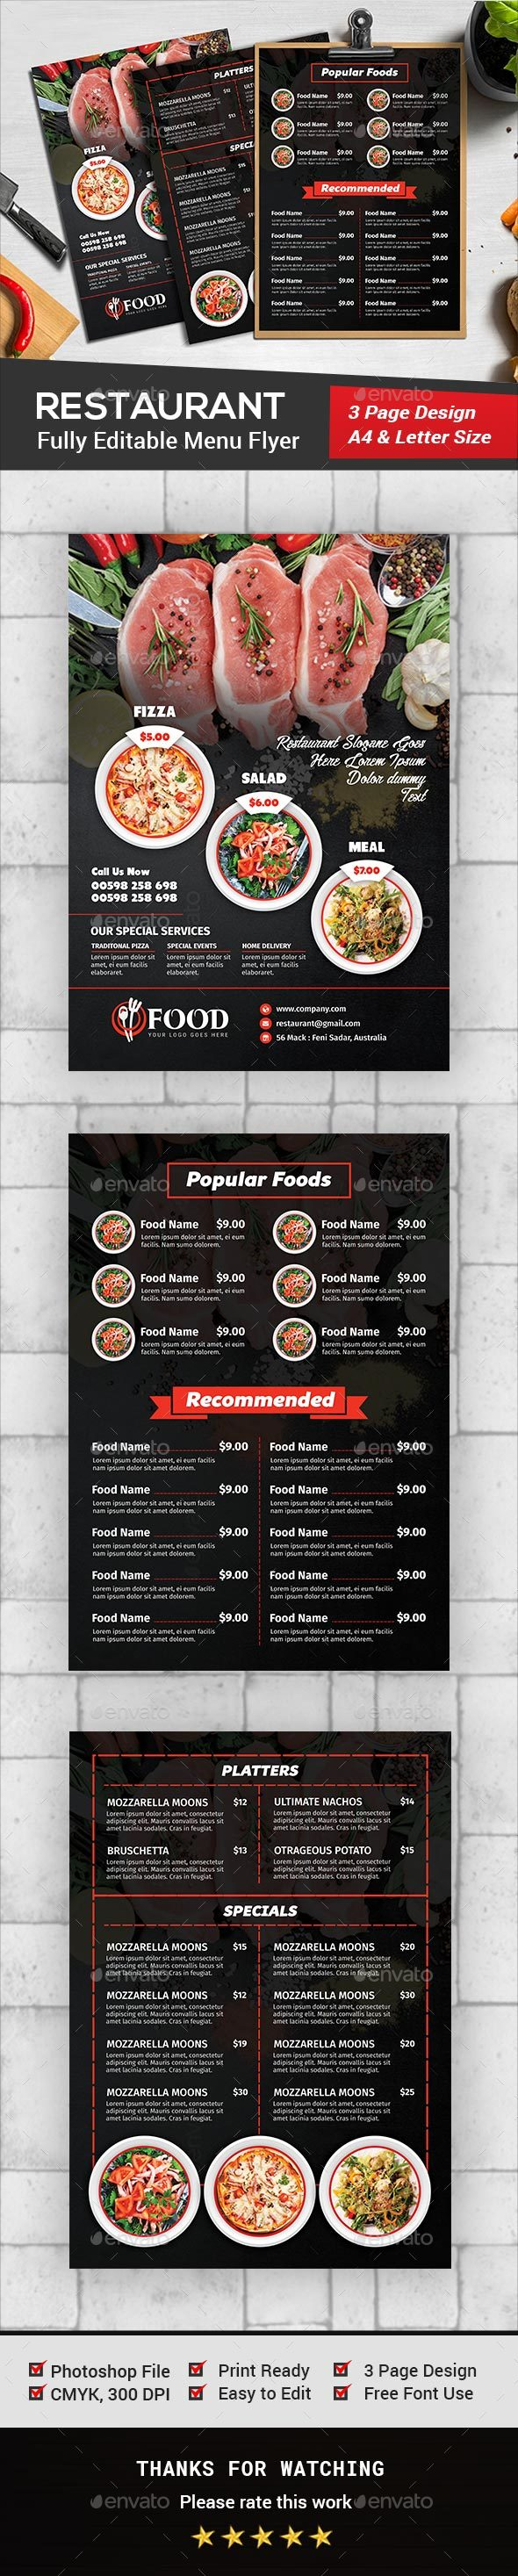 Restaurant Menu Flyer - Food Menus Print Templates